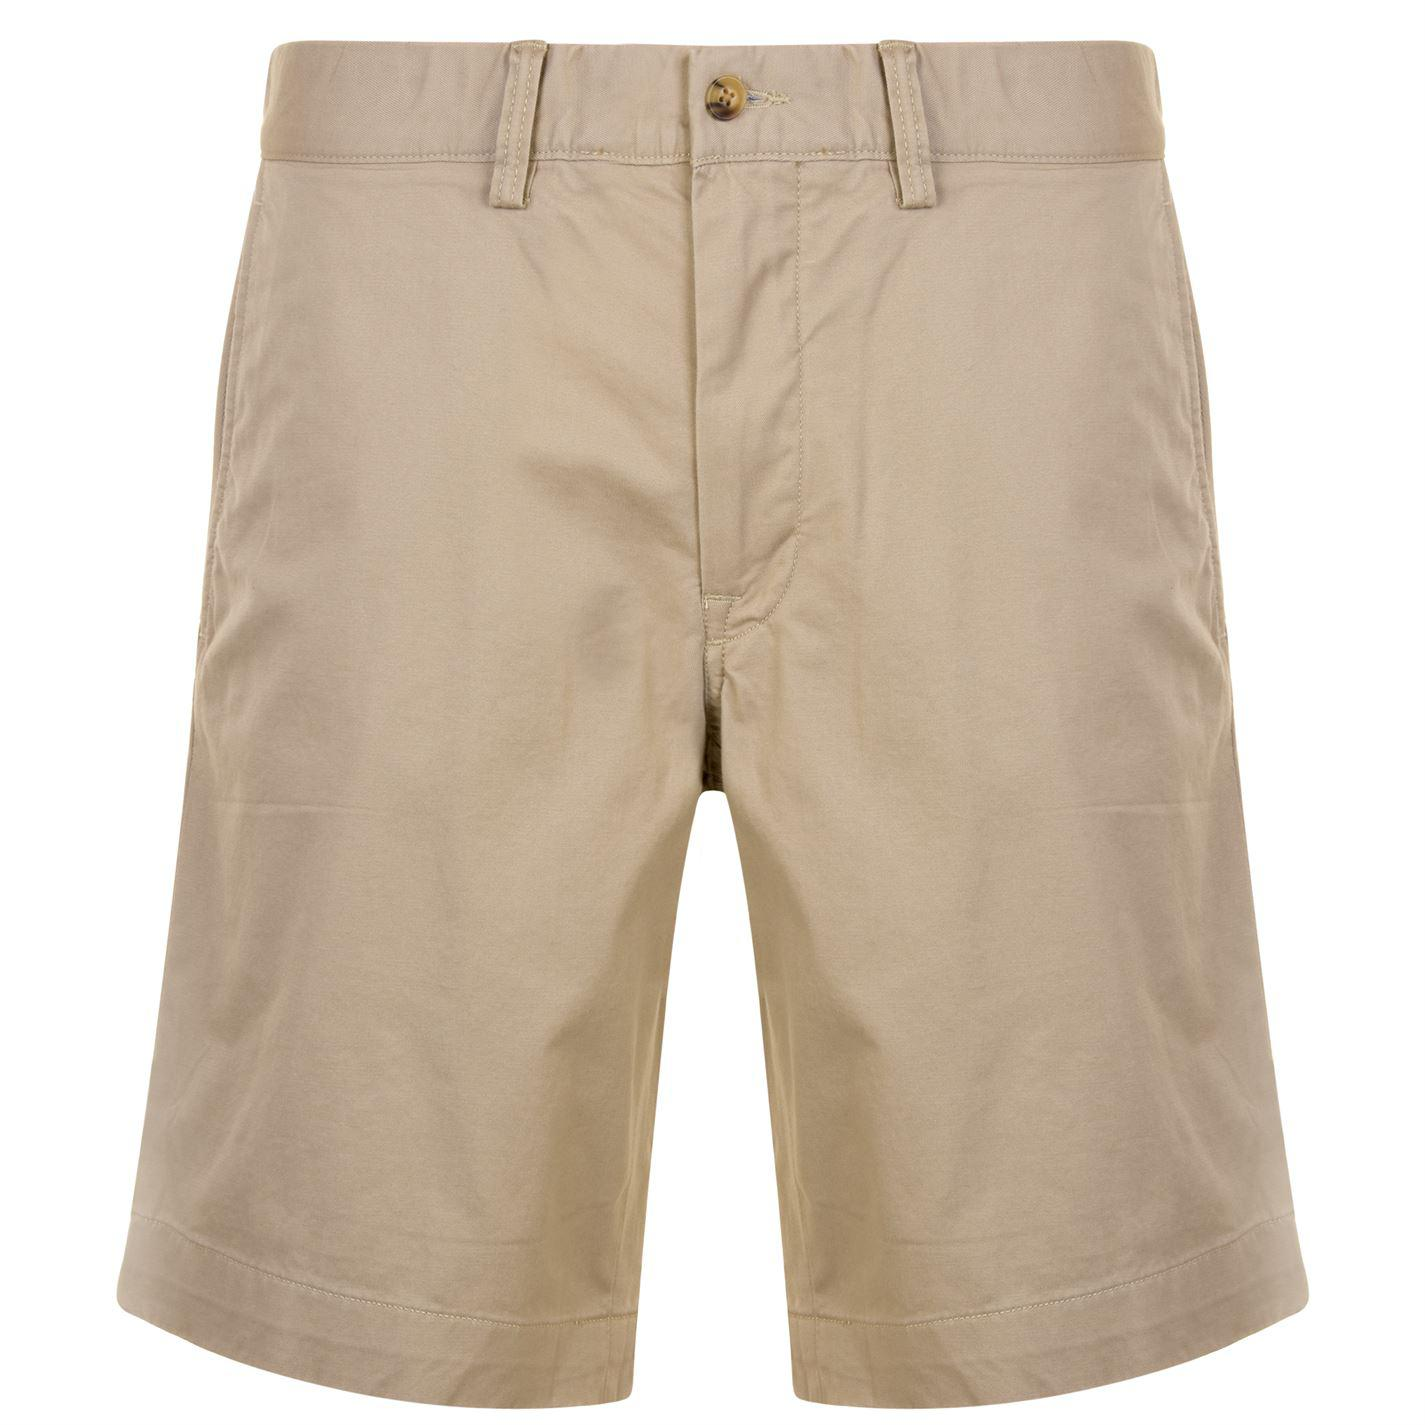 c7a65ef74 Lyst - Polo Ralph Lauren Cotton Shorts in Natural for Men